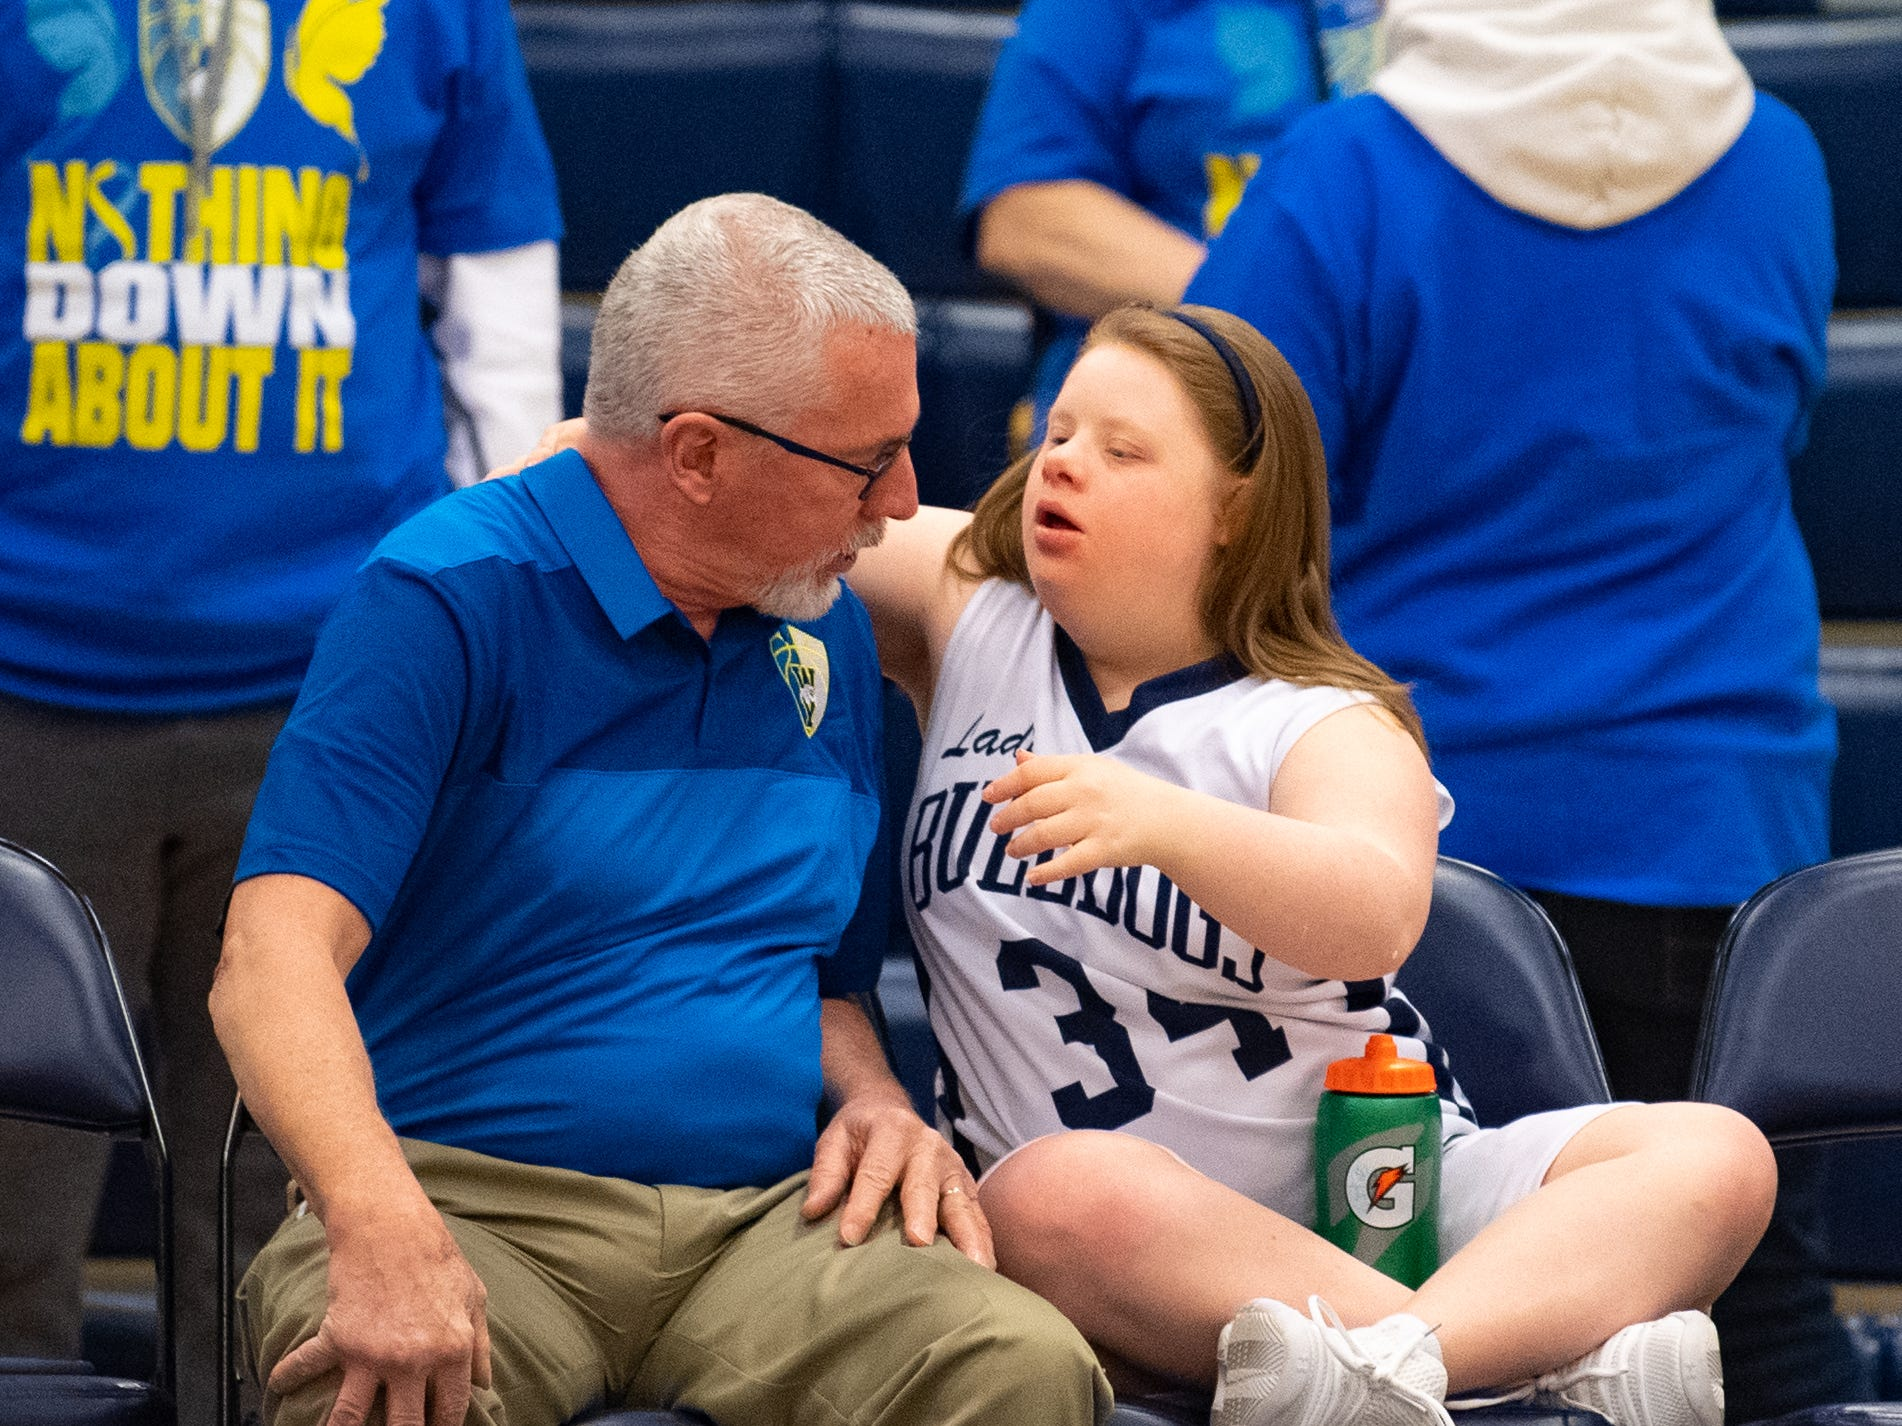 Katie Kniery (34) and West York coach Al Trimmer discuss the plays before the junior varsity girls' basketball game between West York and Dover, February 1, 2019 at West York Area High School.